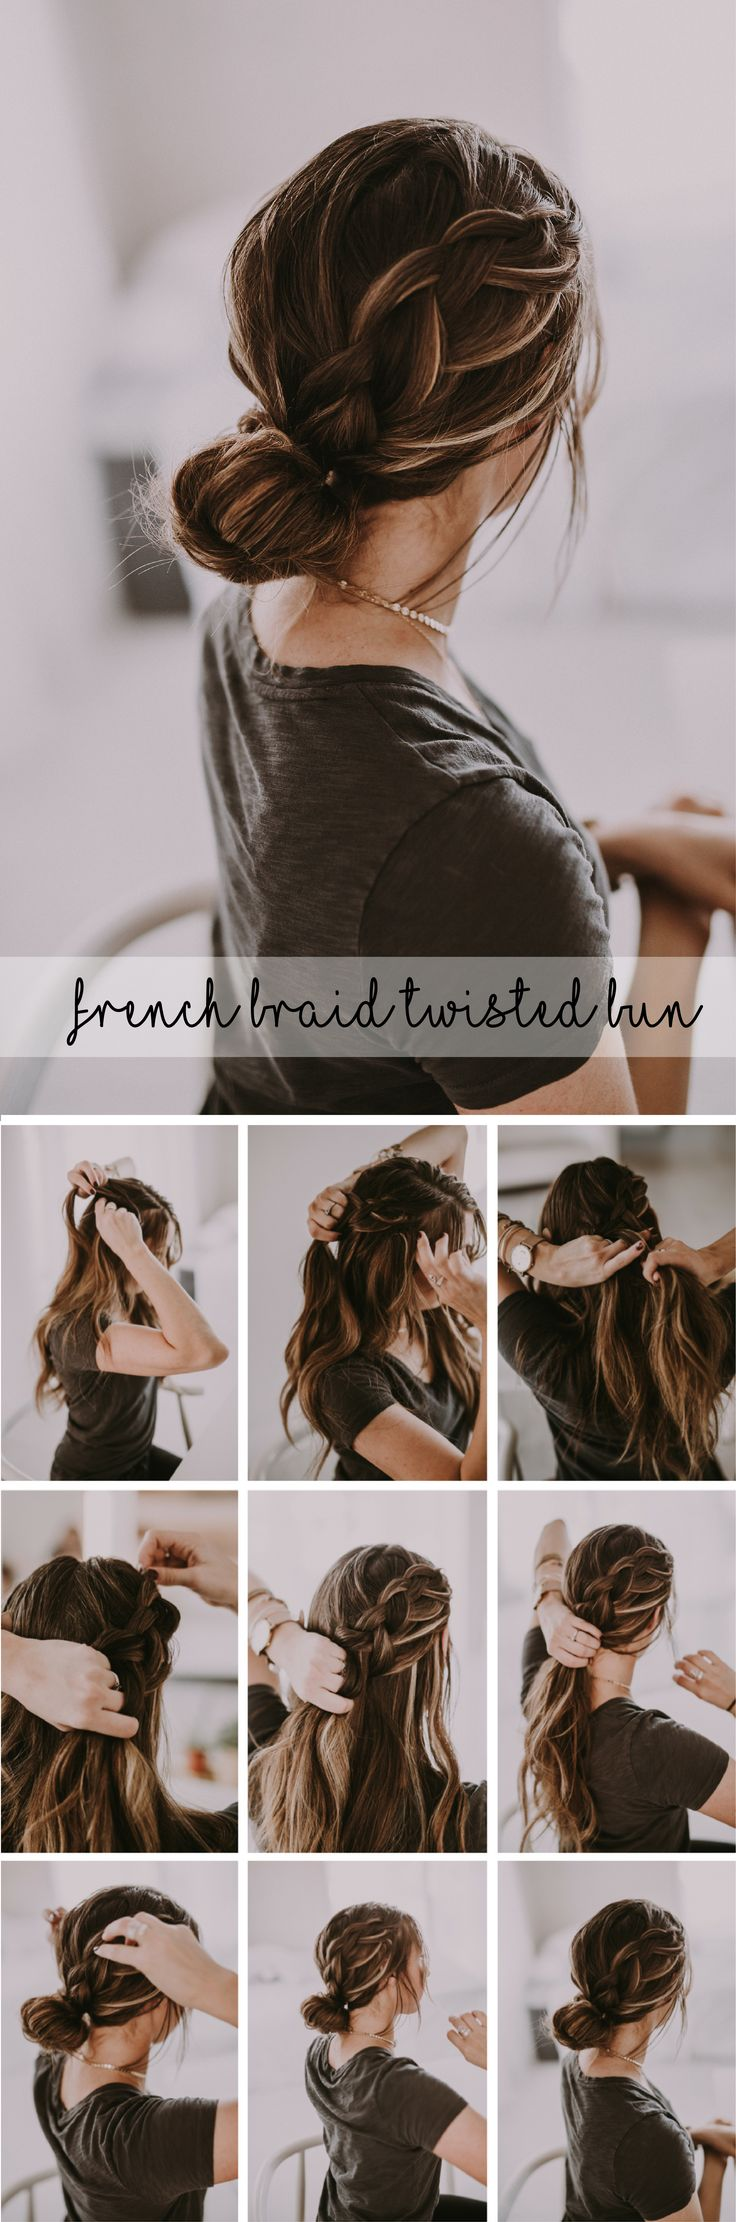 Beautiful dutch french braid to a loose twisted bun hairstyle tutorial. This couldn't be more perfect for when you need your hair out of your face, or need something simple and elegant for an event or party.